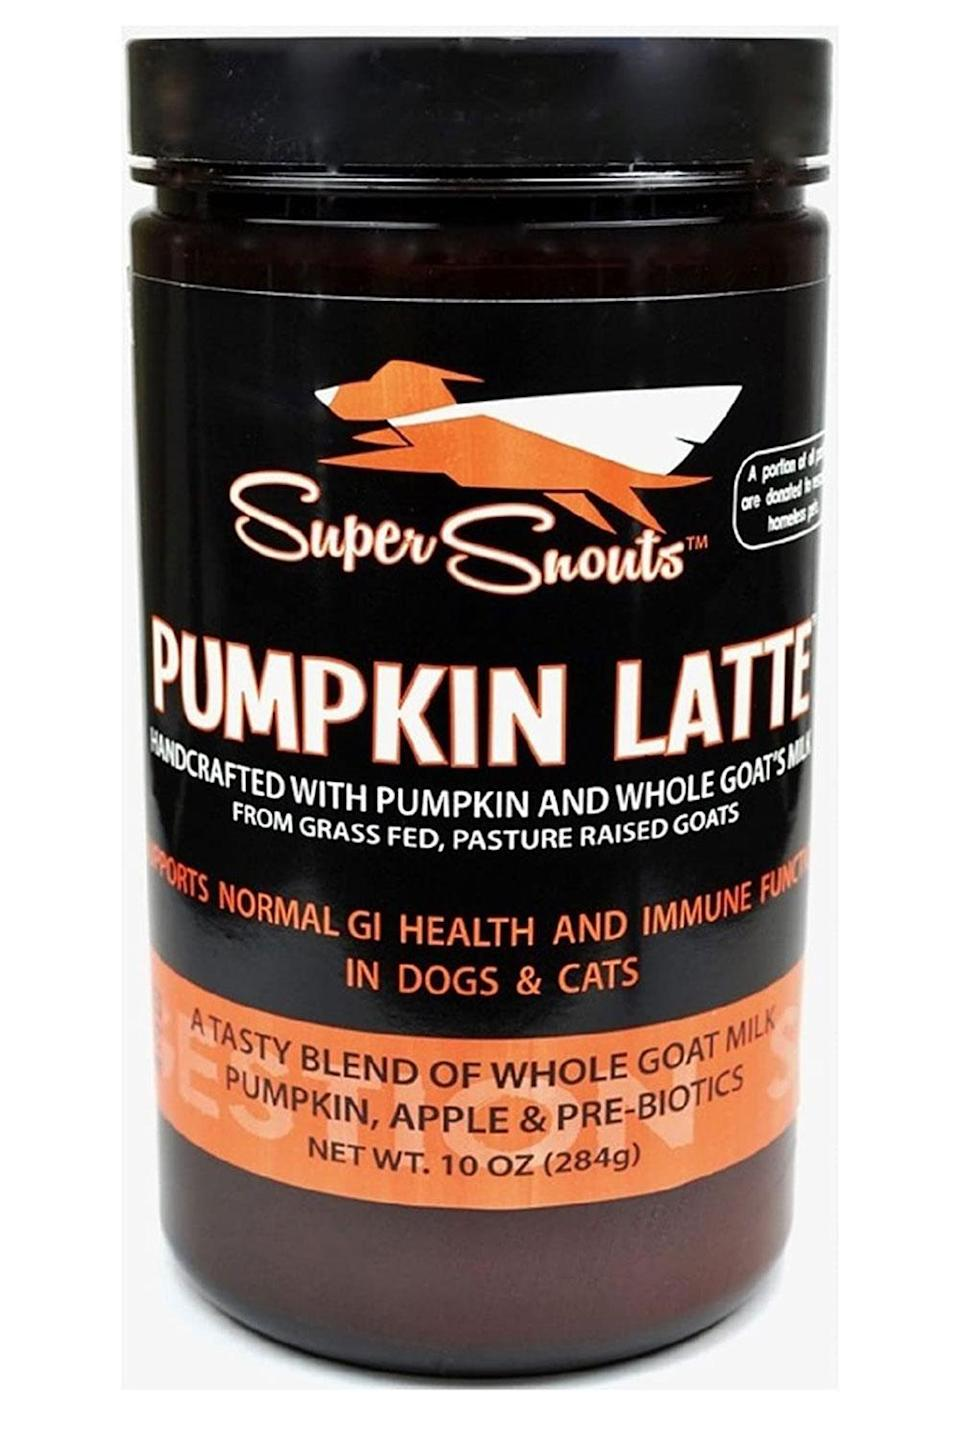 """<p>Make your dog their own PSL with this pet-friendly powder designed to go on top of food or into a pup's water, which helps promote good digestive health in canines.</p> <p><strong>Buy it!</strong> Pumpkin Latte Digestive Health Powder, $23.89; <a href=""""https://www.amazon.com/Diggin-Your-Dog-Digestive-Pre-biotic/dp/B07F5RT4YR?&linkCode=ll1&tag=pogiftfordogownersobsessedwithpumpkinspicedlatteskbender0921-20&linkId=92648b472061ab8b1db75b4b5d9d3ecc&language=en_US&ref_=as_li_ss_tl"""" rel=""""nofollow noopener"""" target=""""_blank"""" data-ylk=""""slk:Amazon.com"""" class=""""link rapid-noclick-resp"""">Amazon.com</a></p>"""